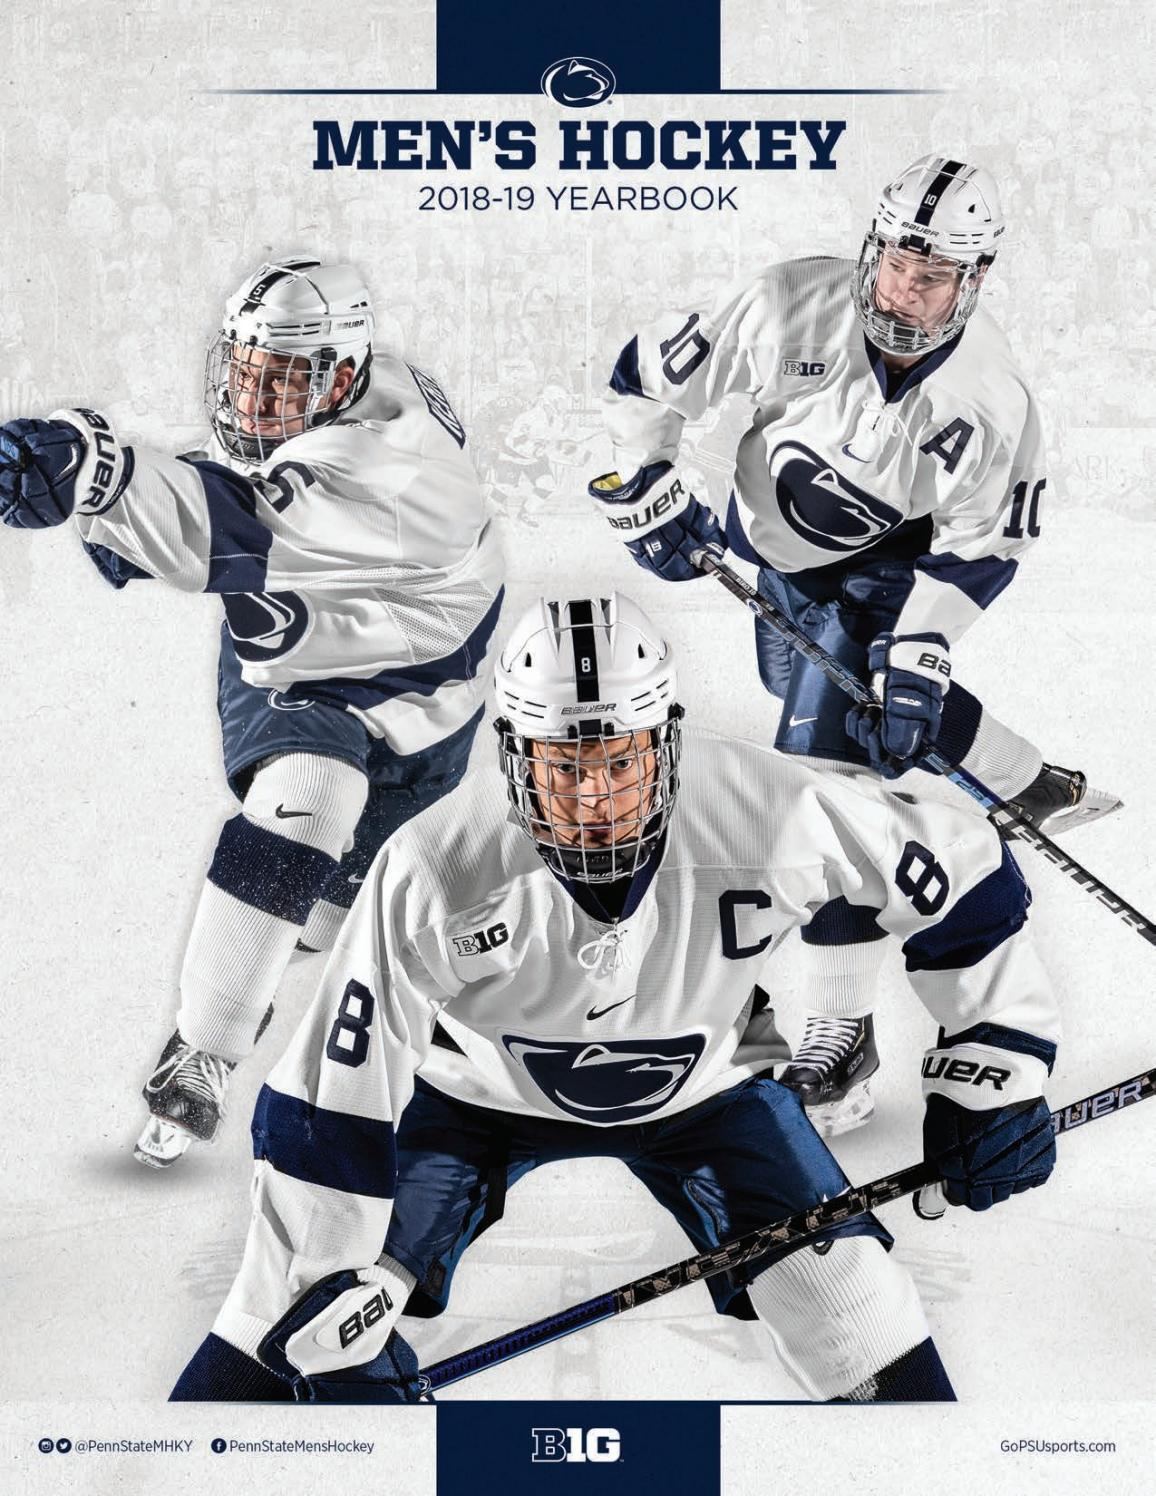 ae0dbc97b339 2018-19 Men s Ice Hockey Yearbook by Penn State Athletics - issuu